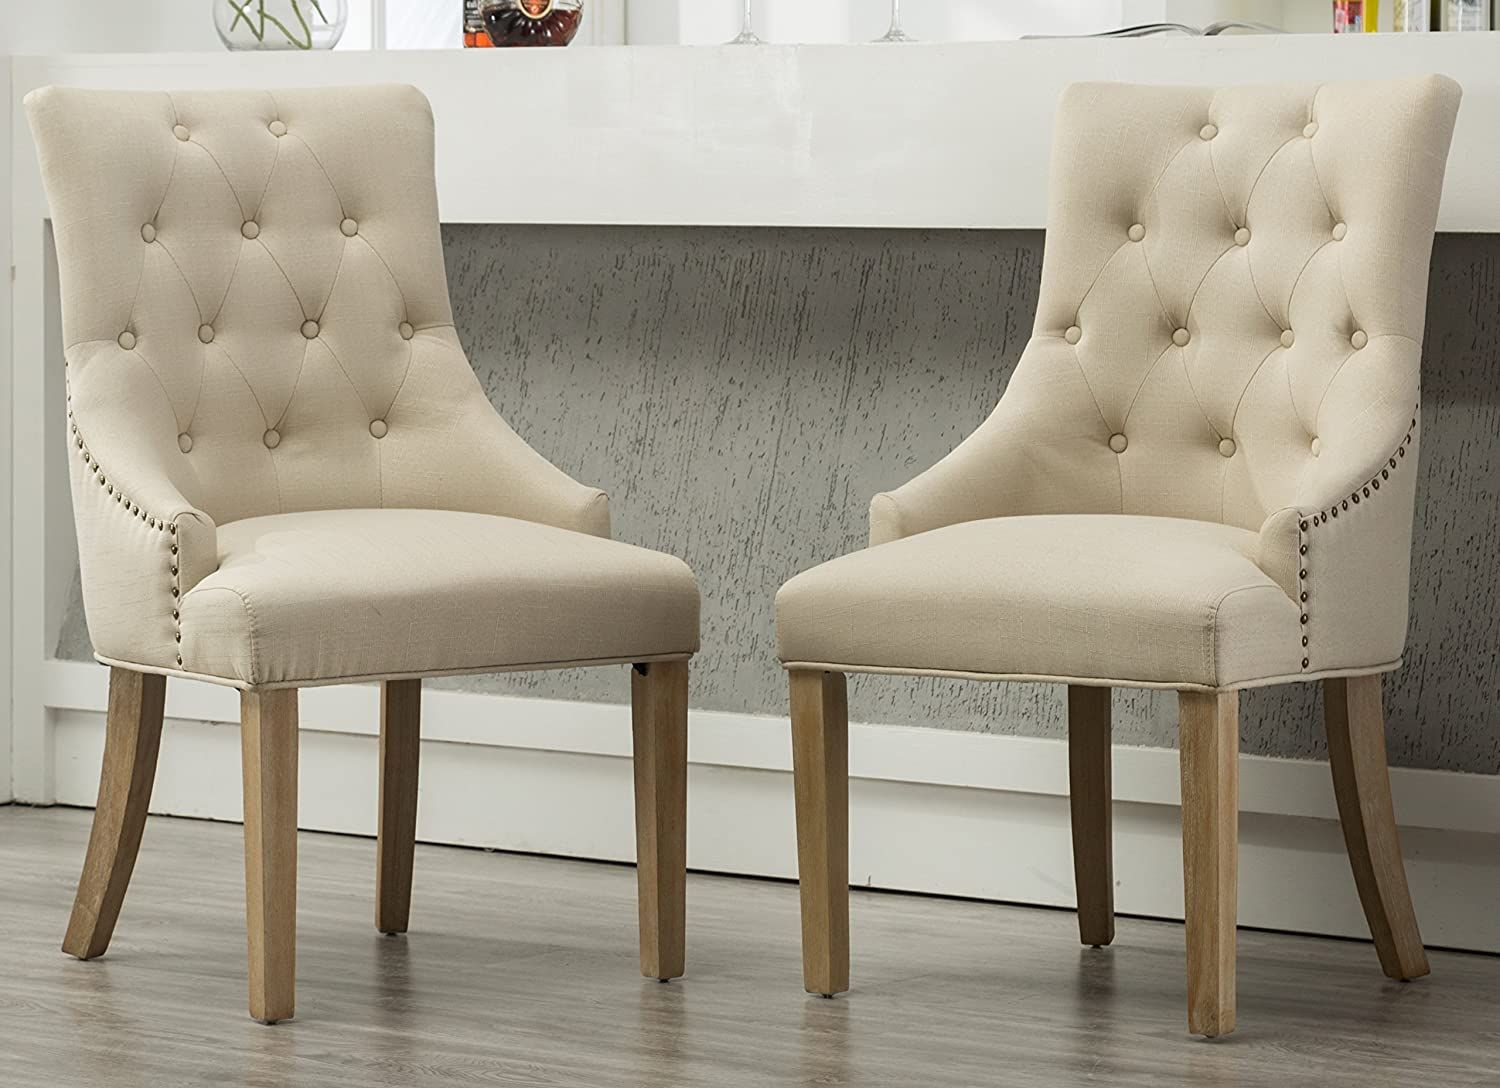 White Tan Button Tufted Wingback Dining Chairs Set Of 2 In 2021 Farmhouse Dining Chairs Tufted Dining Chairs Fabric Dining Chairs